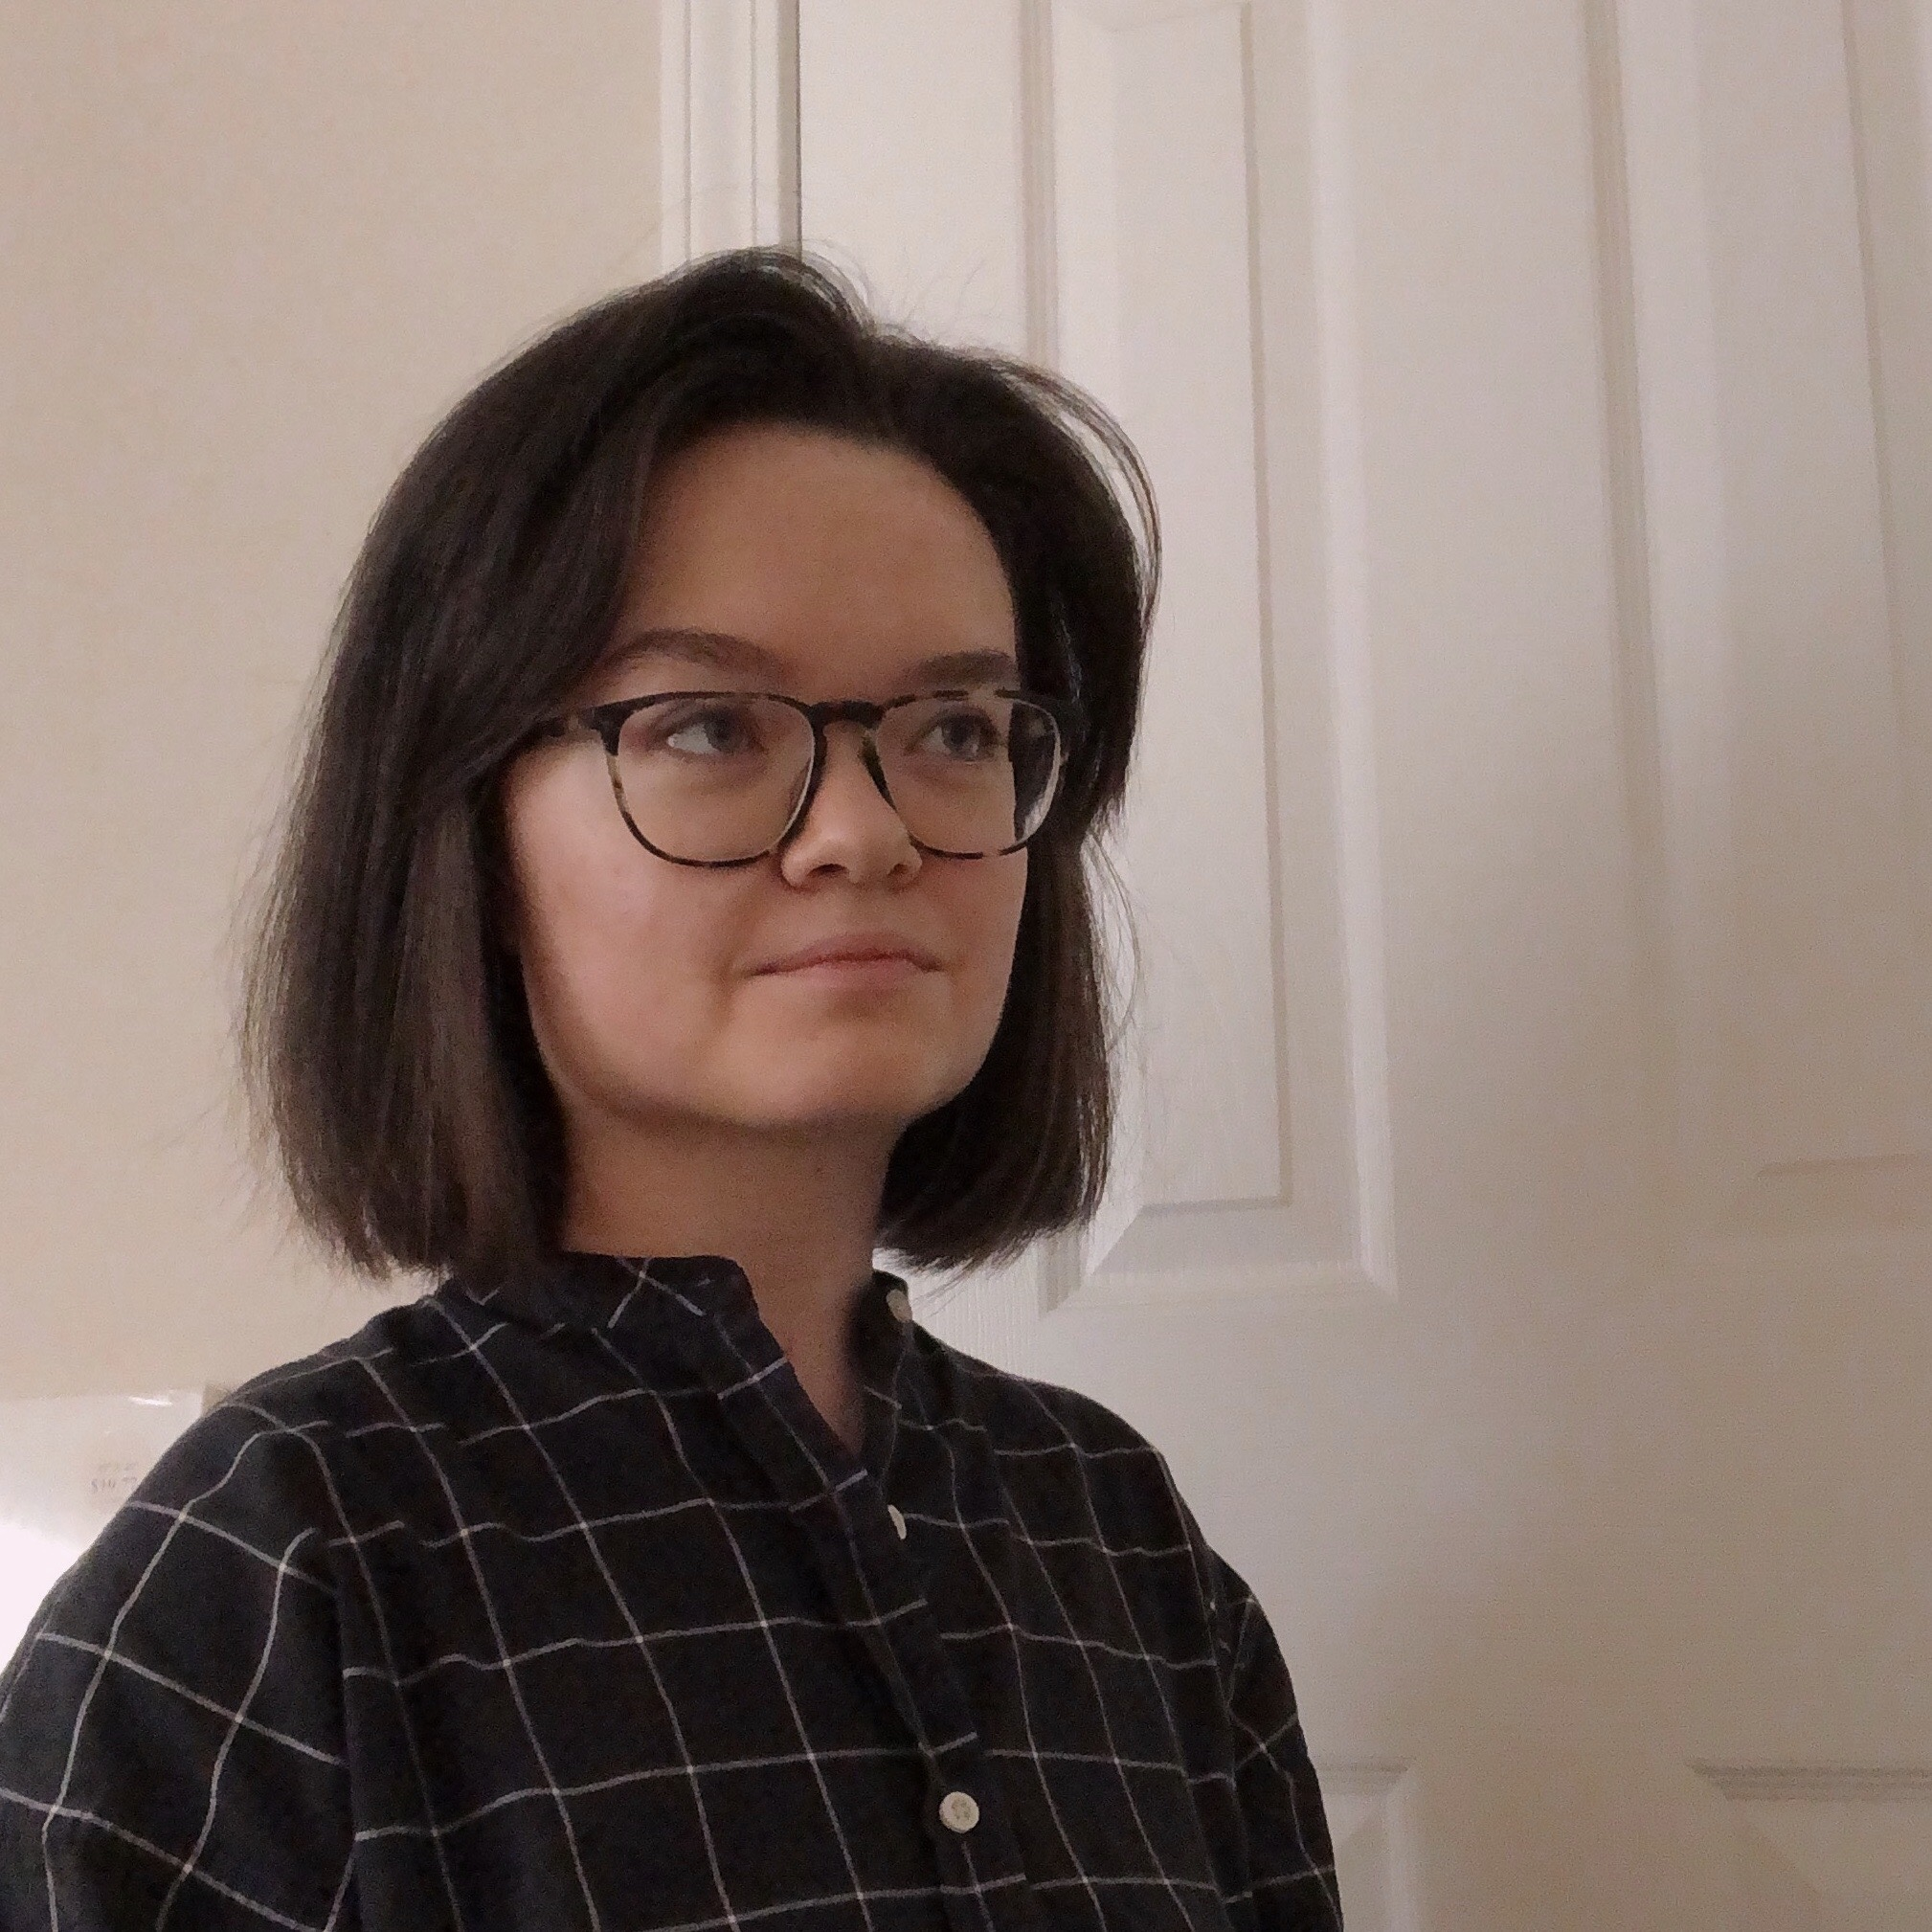 Photo of Anna Grace Sherlock. She's a white woman with shoulder-length brown hair and glasses. She's wearing a black and white checked shirt and is looking up and to the side, optimistic.